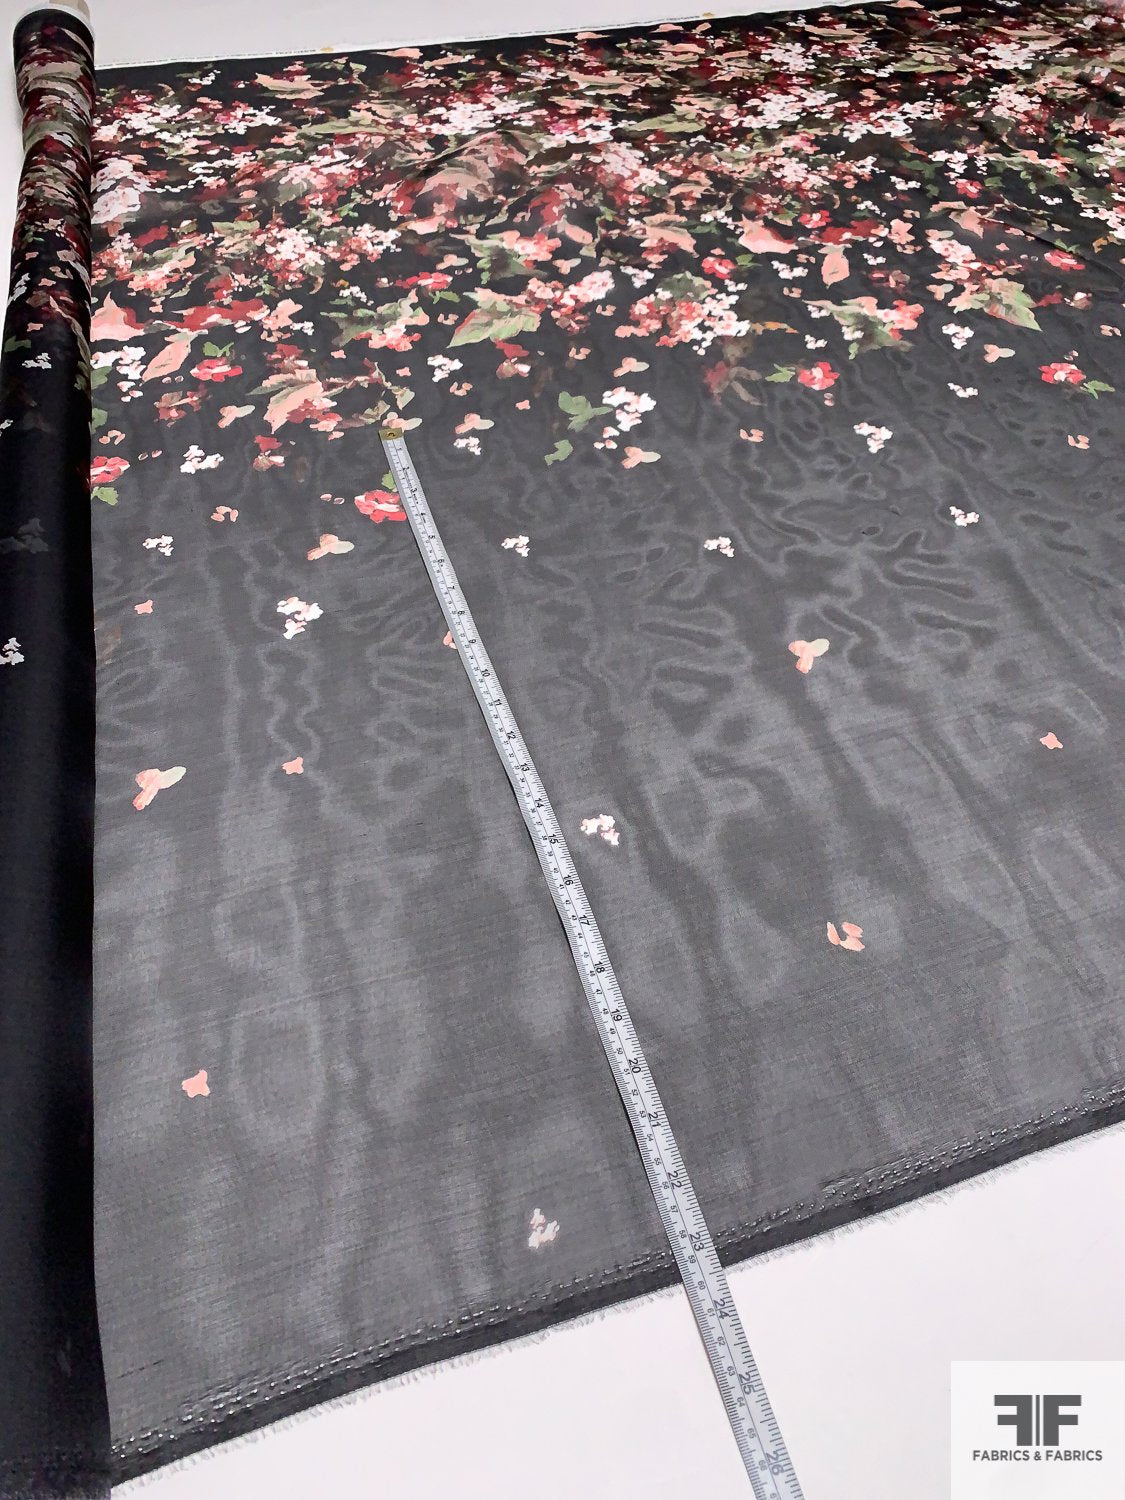 Pamella Roland Italian Painterly Floral Border Printed Fine Satin Face Organza - Black / Green / Red / Mauve